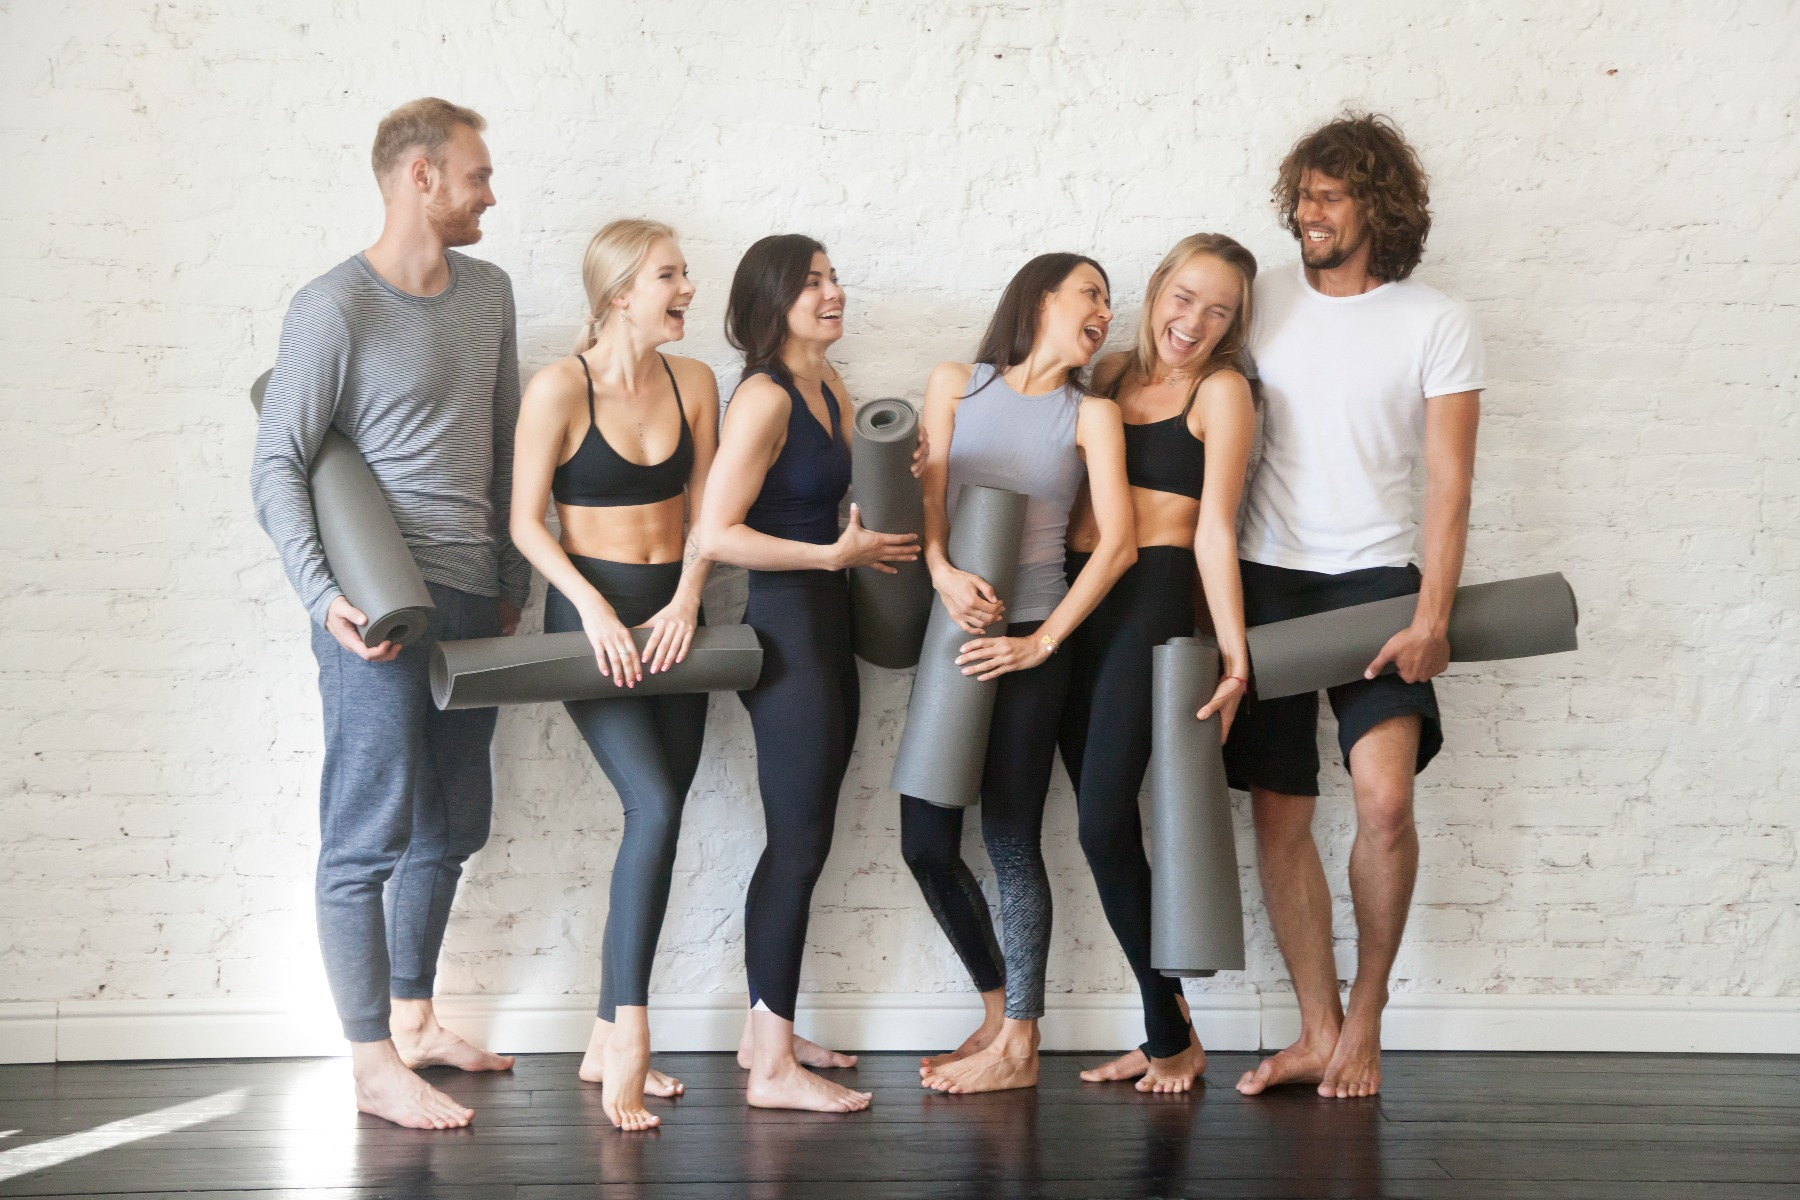 Group of yogis posed against a white brick wall holding yoga mats and smiling